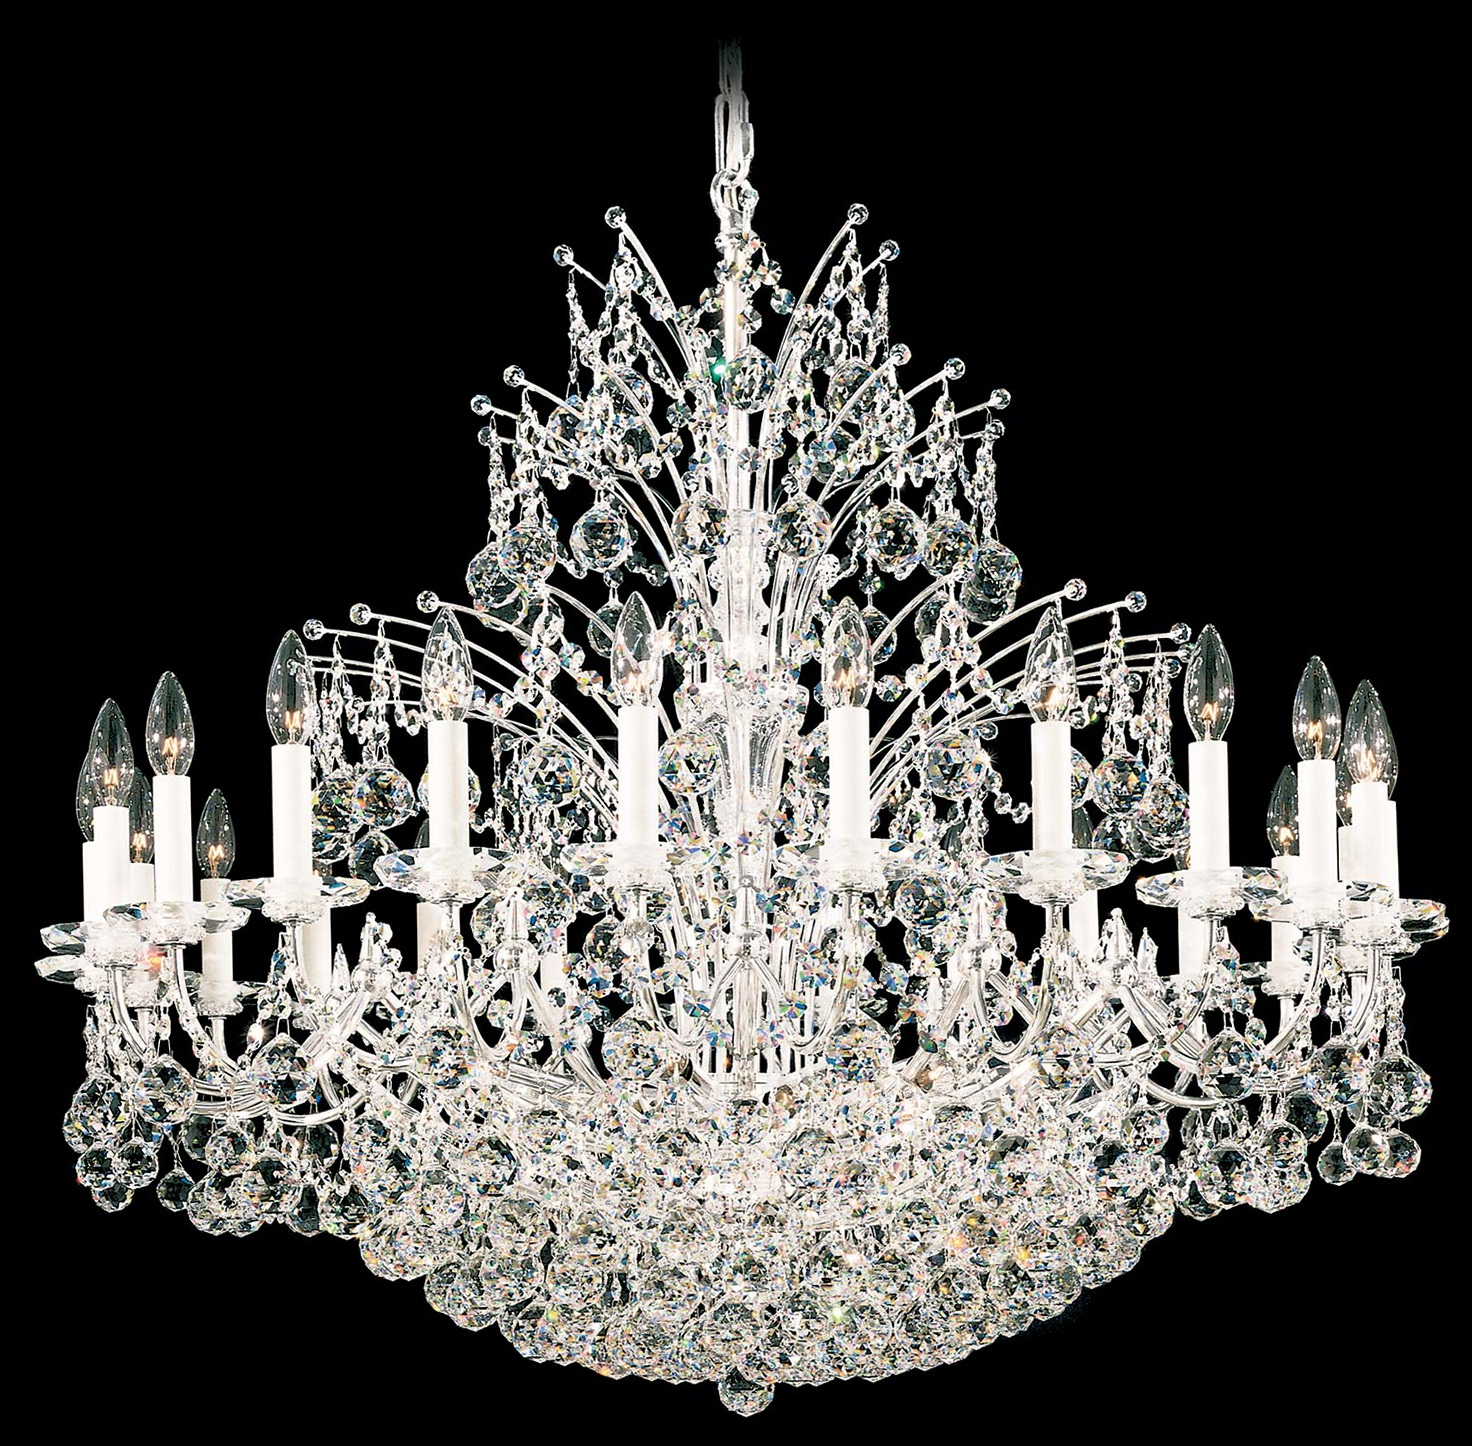 Schonbek Crystal Chandelier Prices